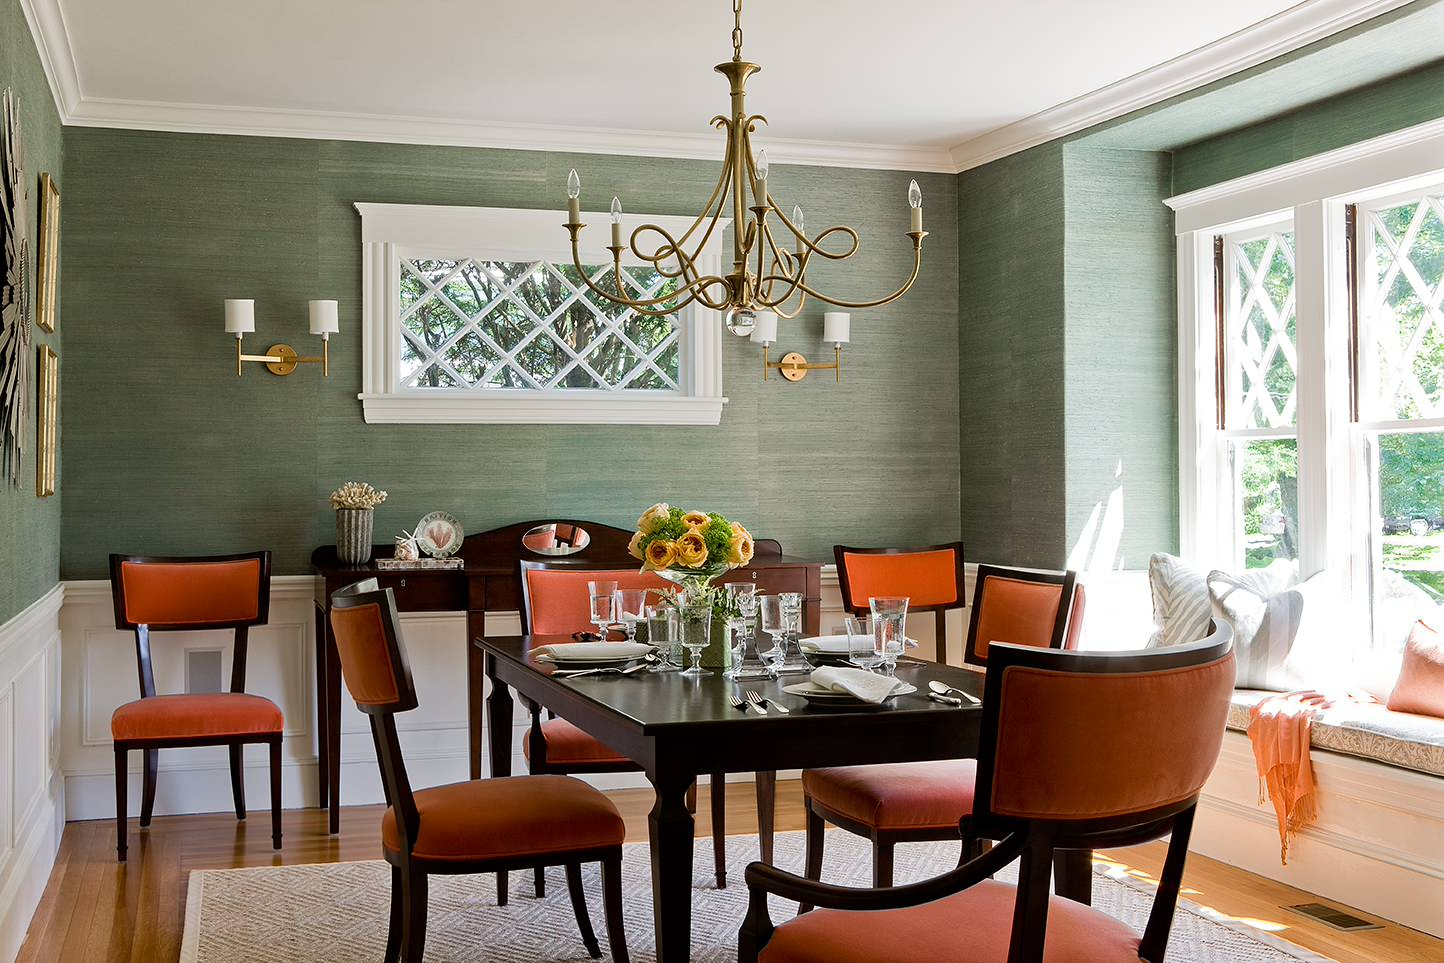 75 Beautiful Dining Room With Green Walls Pictures Ideas March 2021 Houzz